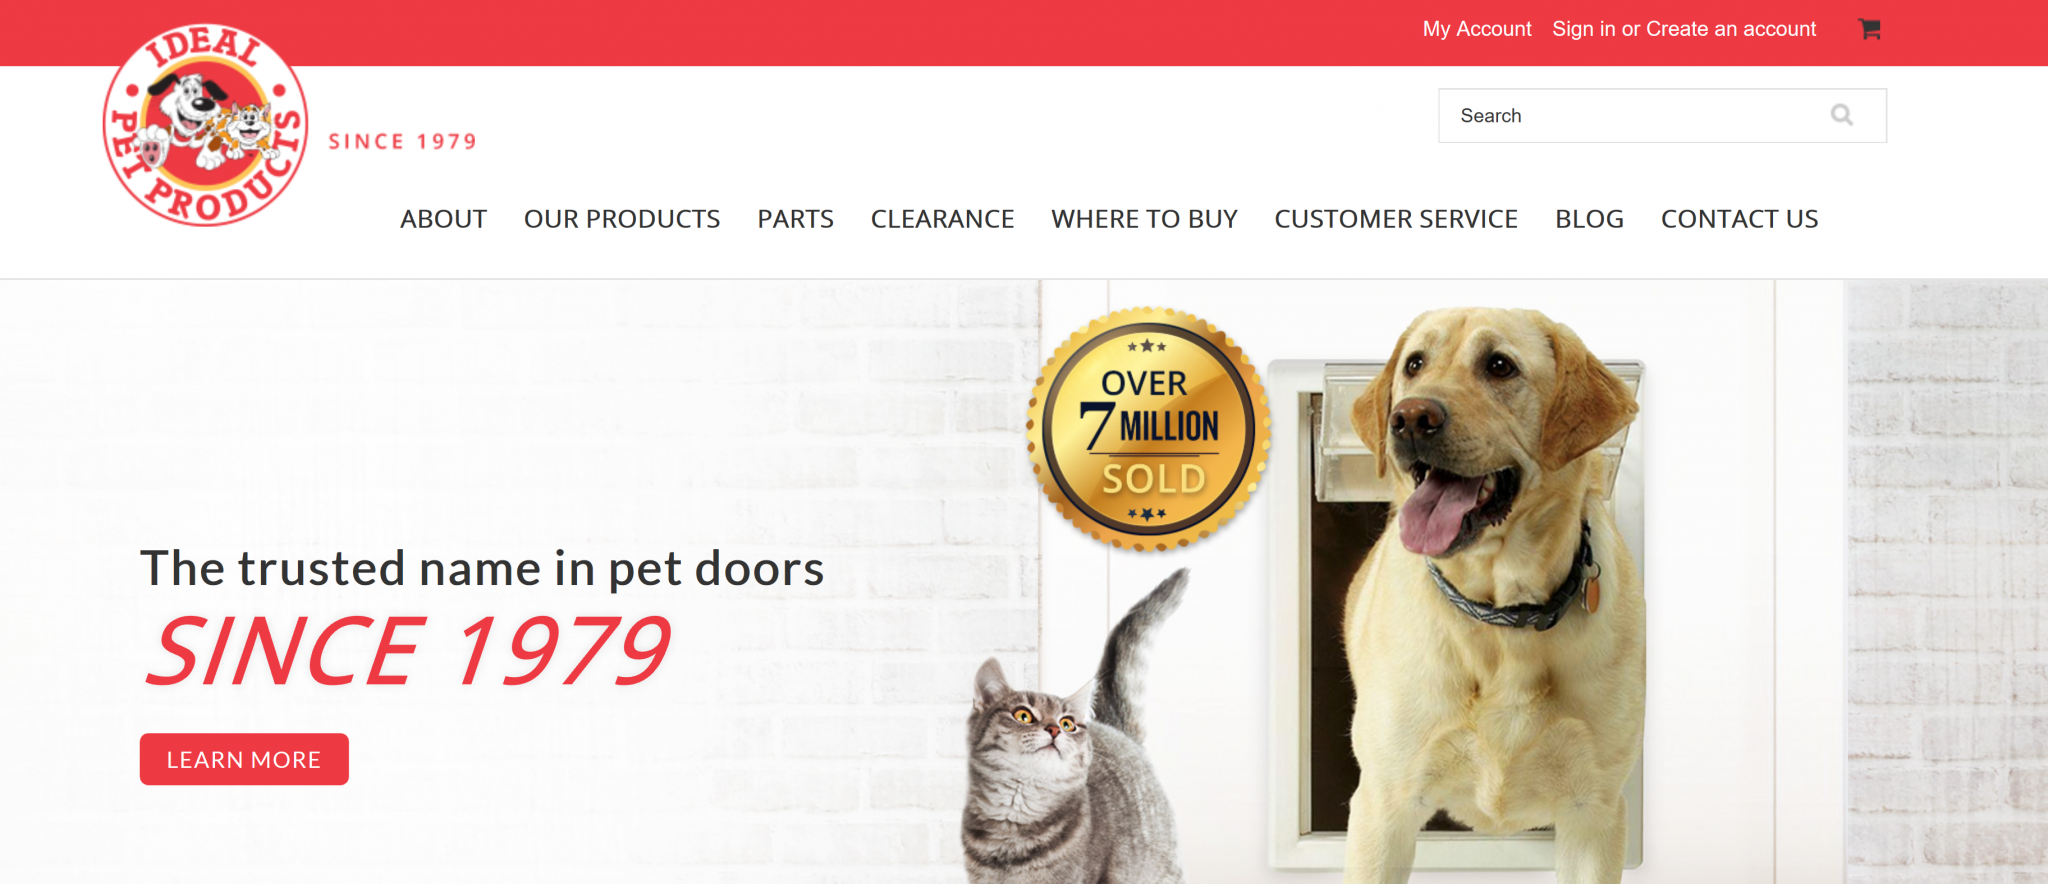 Ideal Pet's Online Store Is A Game-changer